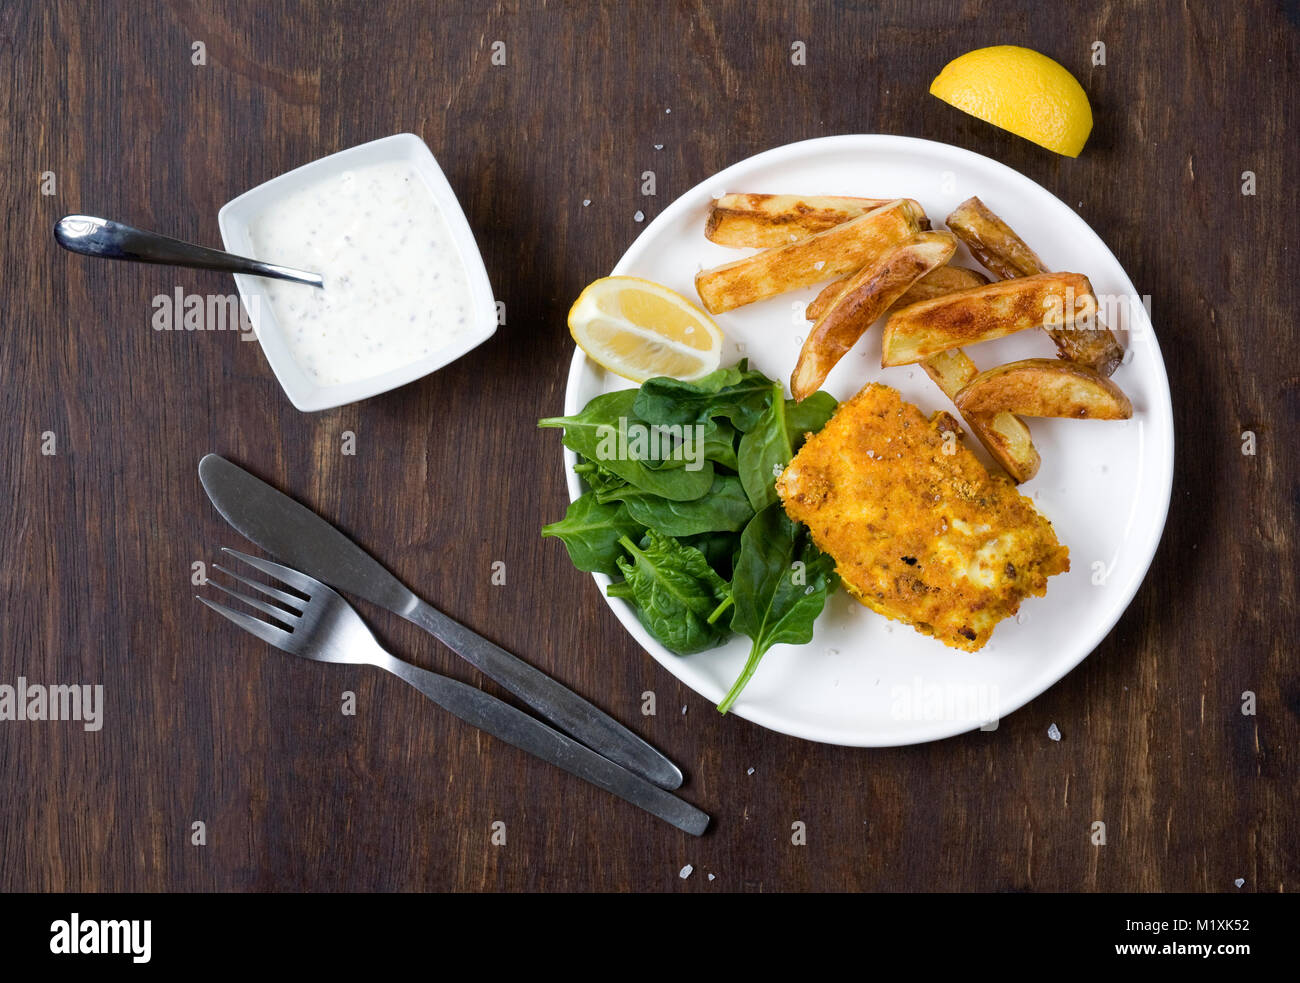 Homemade Fish and Chips. - Stock Image